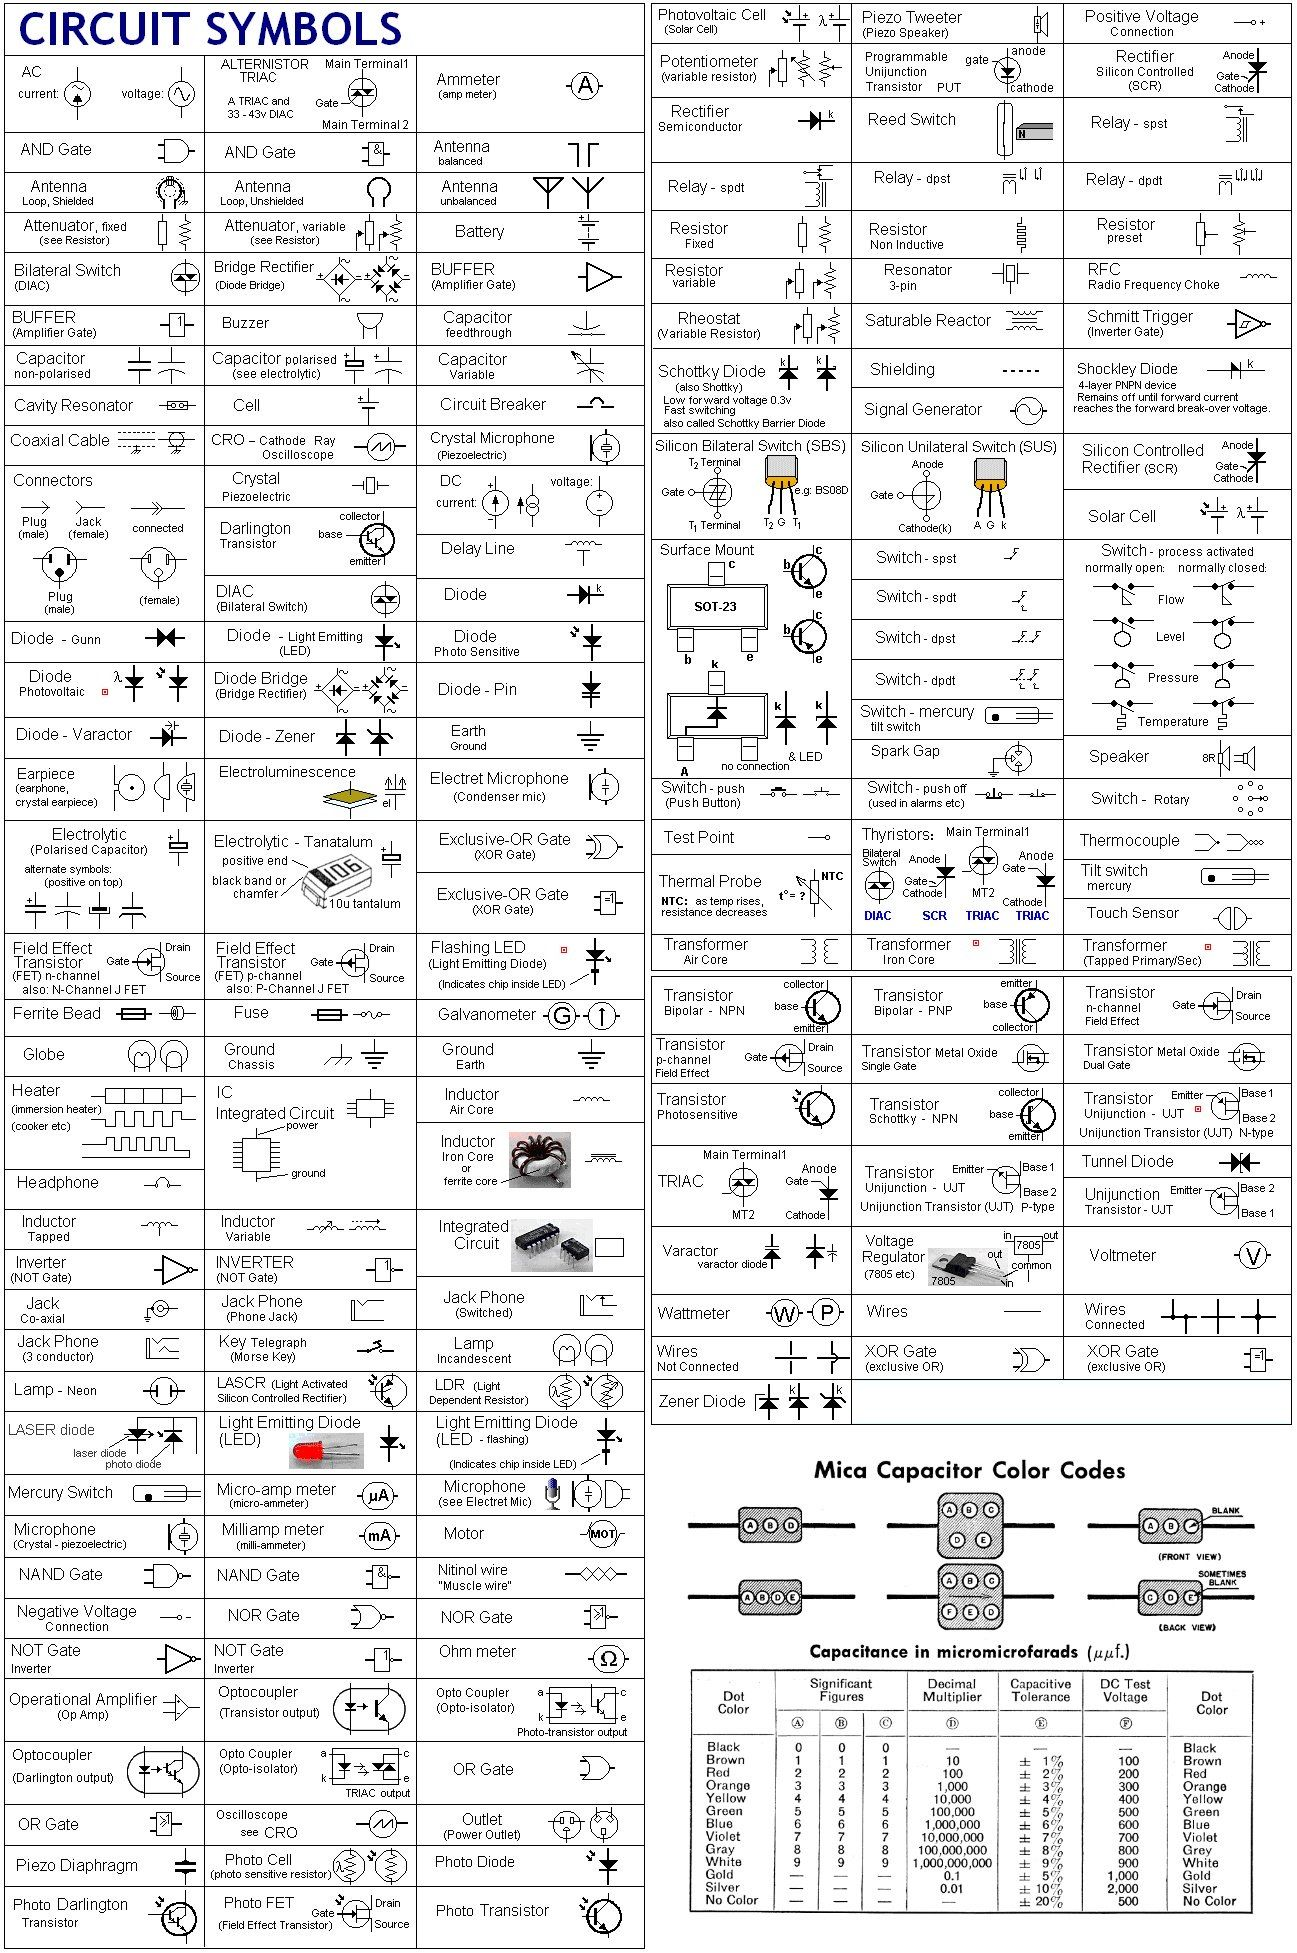 Electric Circuit Symbols.jpg (1297×1953) | Techie | Pinterest ...